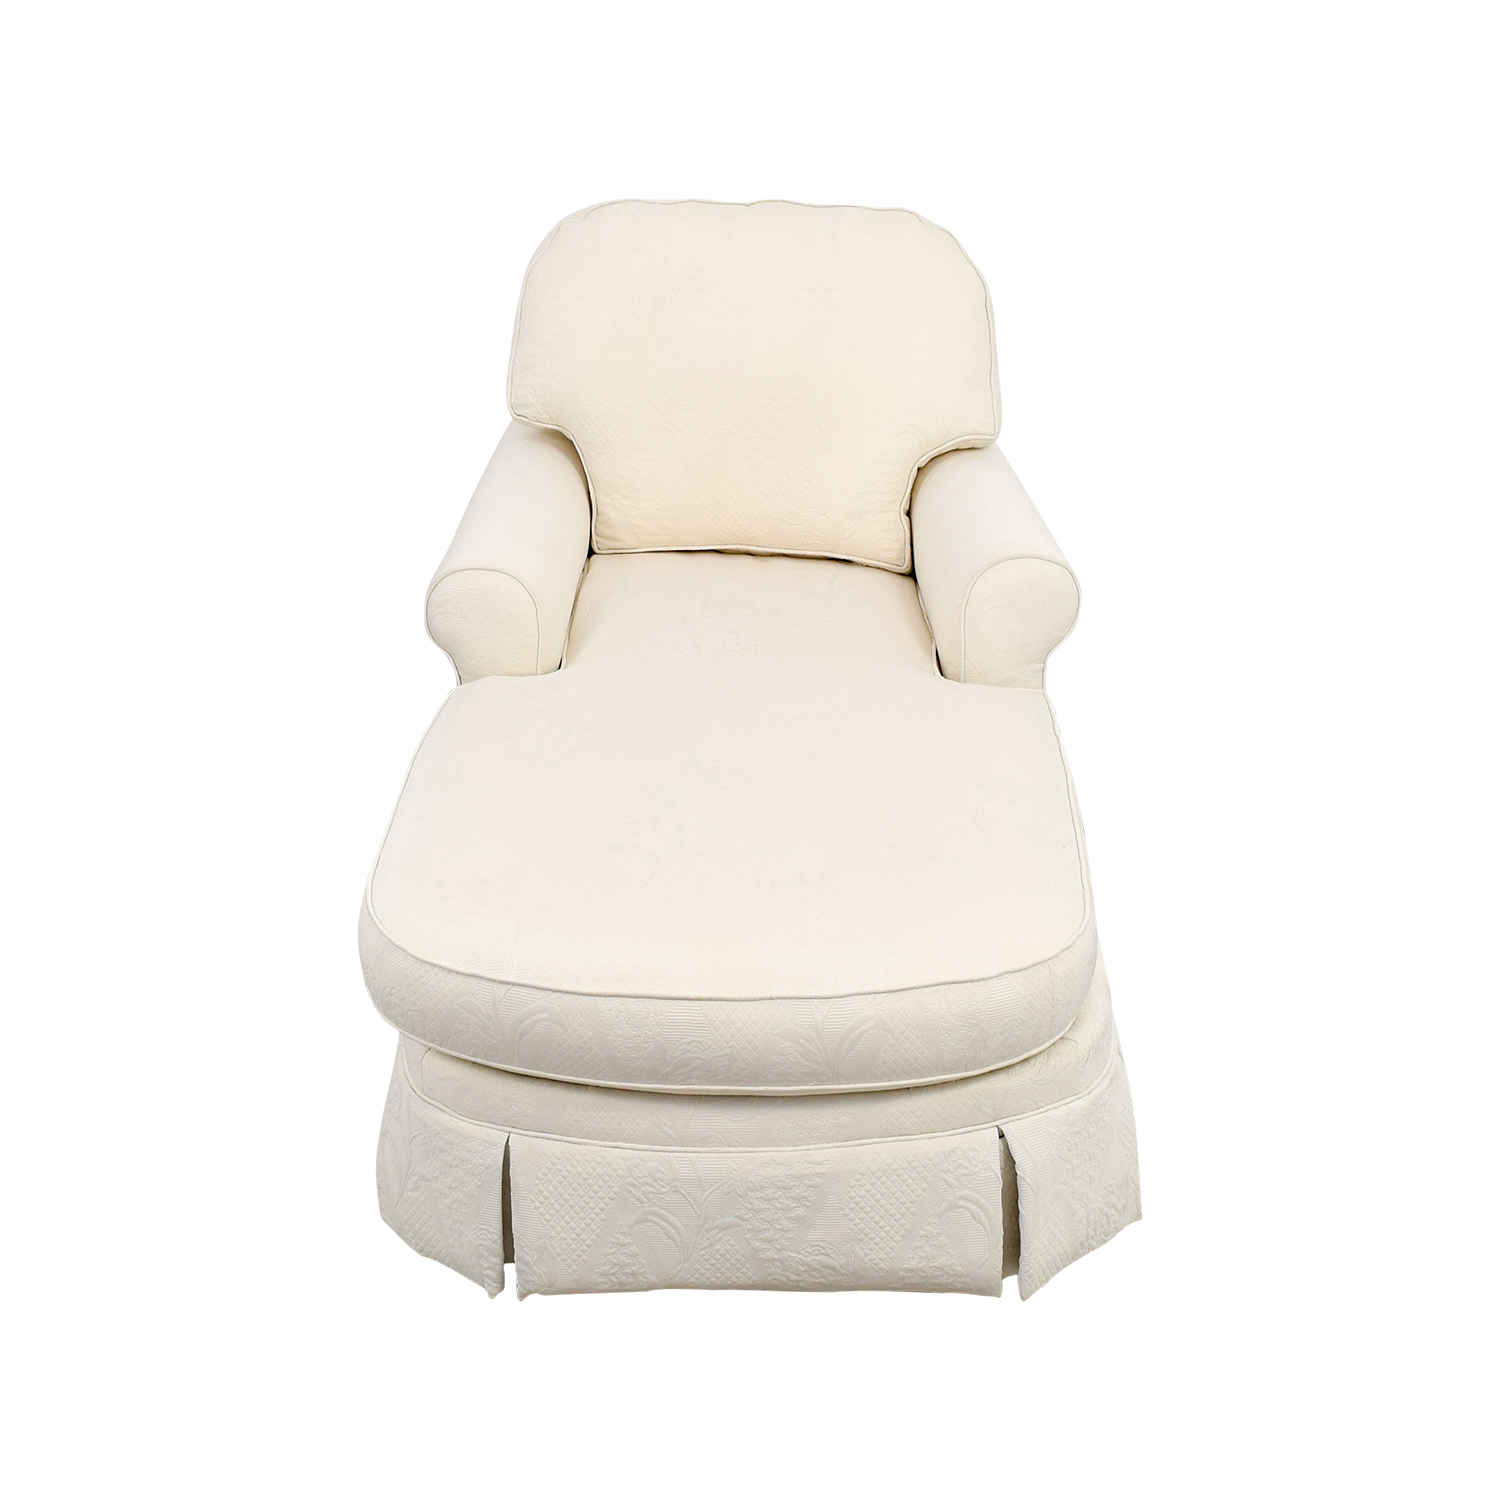 Ethan Allen Ethan Allen Victoria White Chaise Lounge coupon